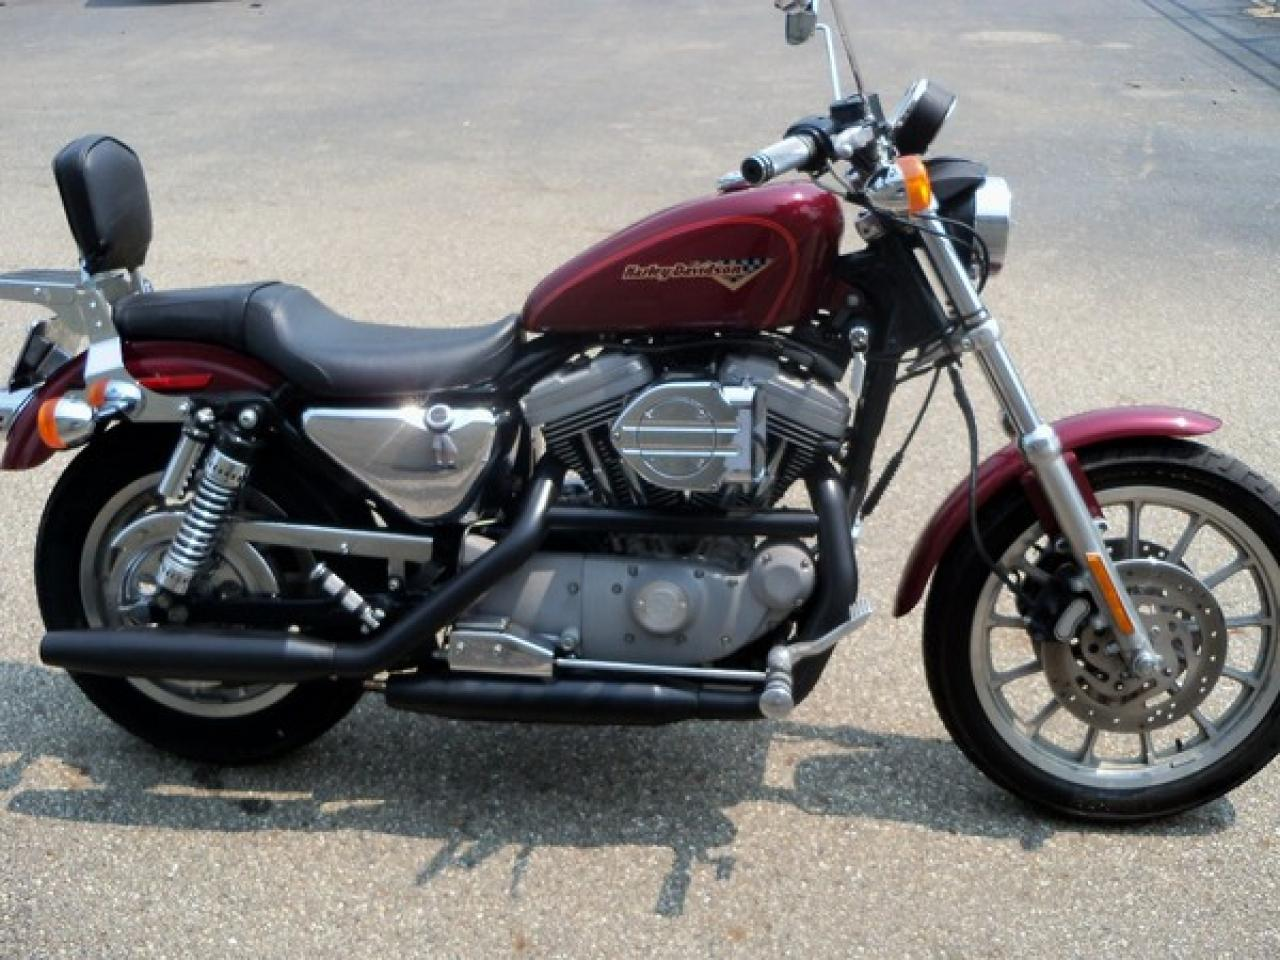 ... Array - harley sportster 1200 service manual rh harley sportster 1200  service manual elzplore